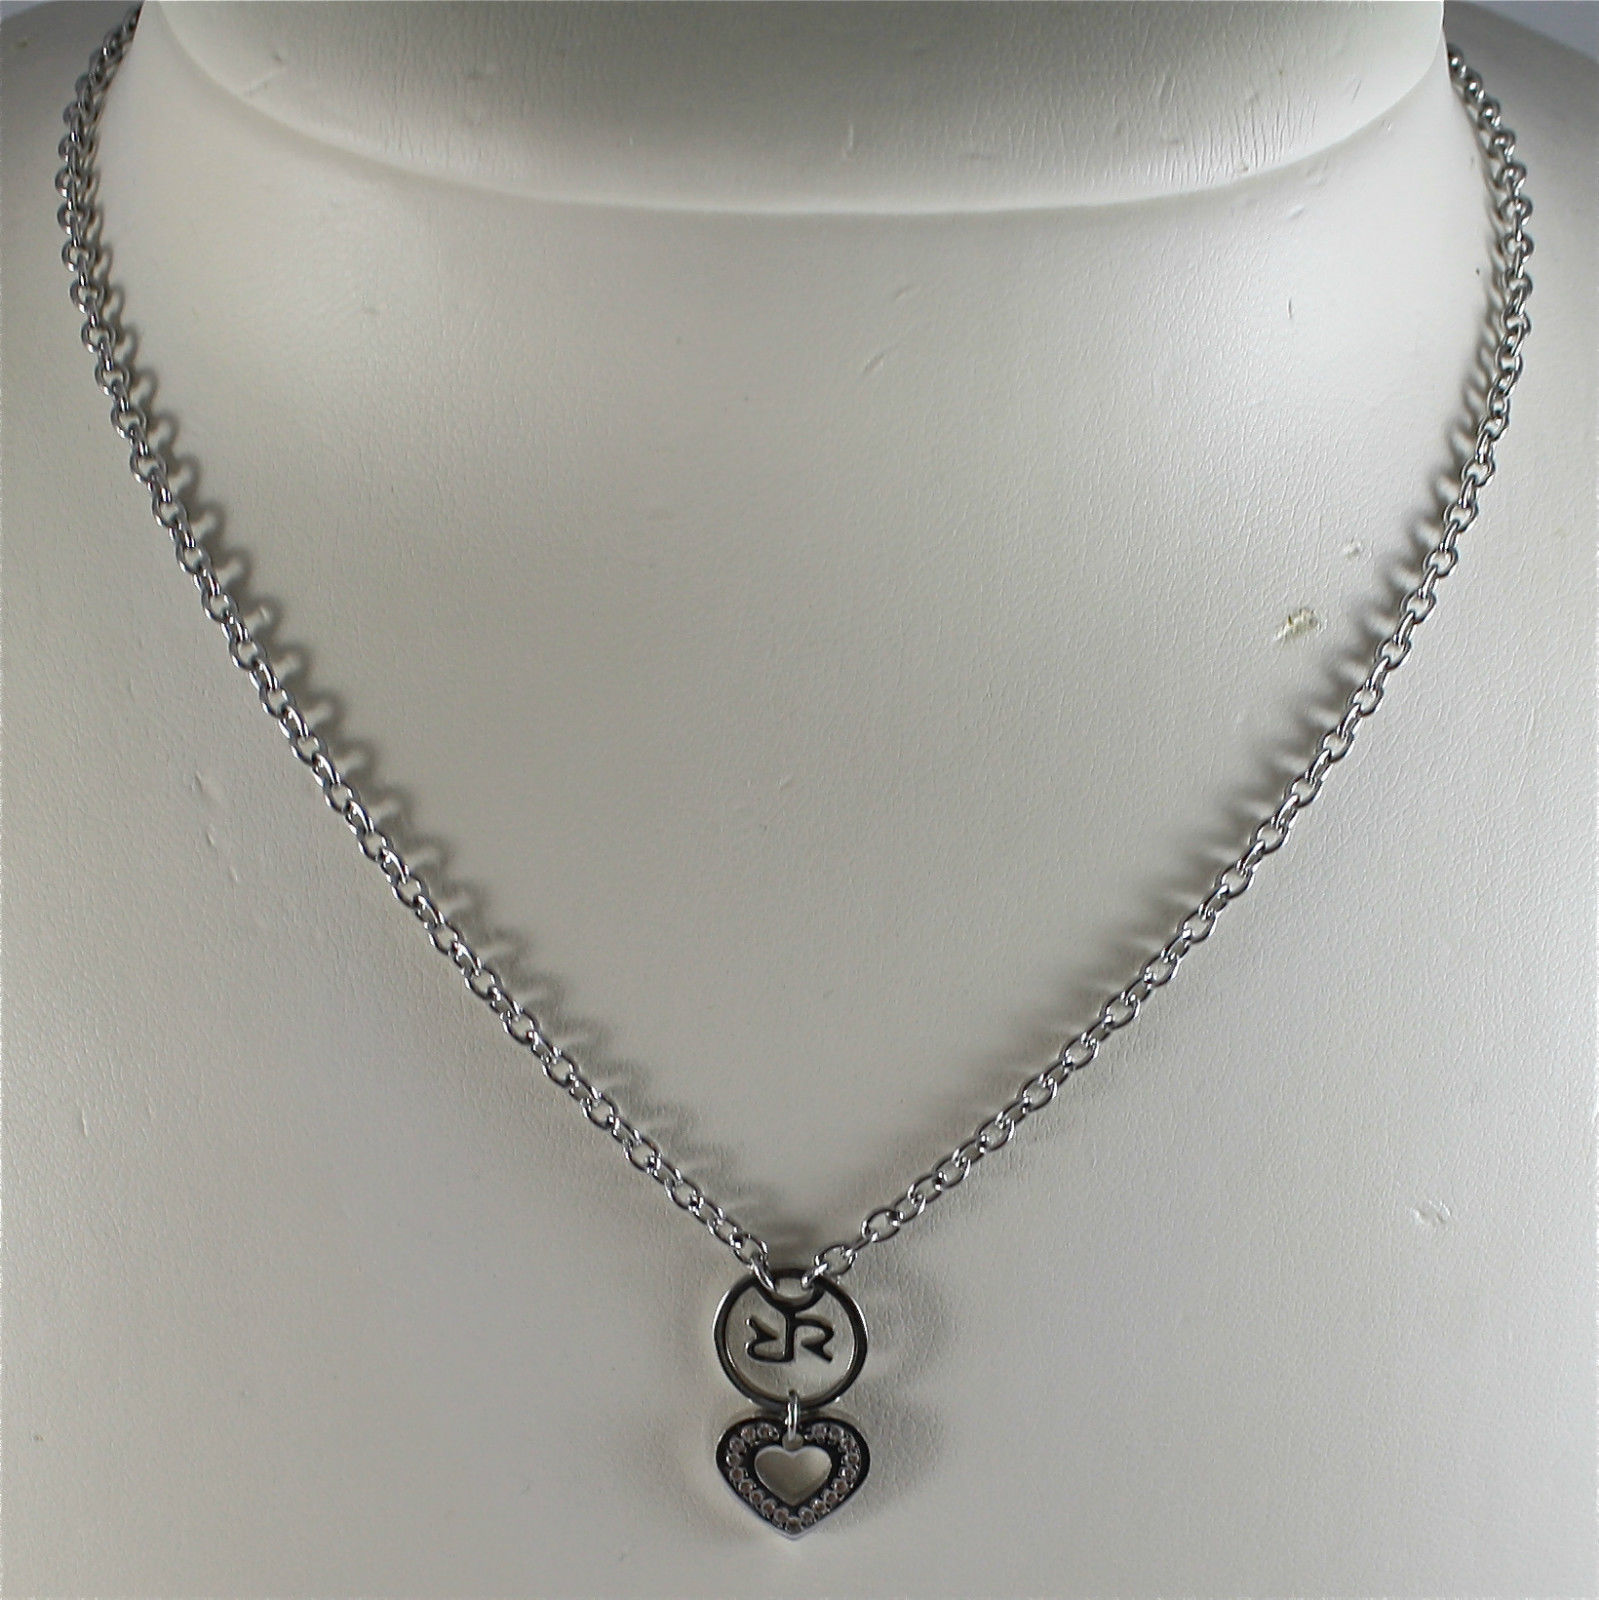 RHODIUM-PL​ATED BRONZE NECKLACE WITH PENDANT BY REBECCA MADE IN ITALY